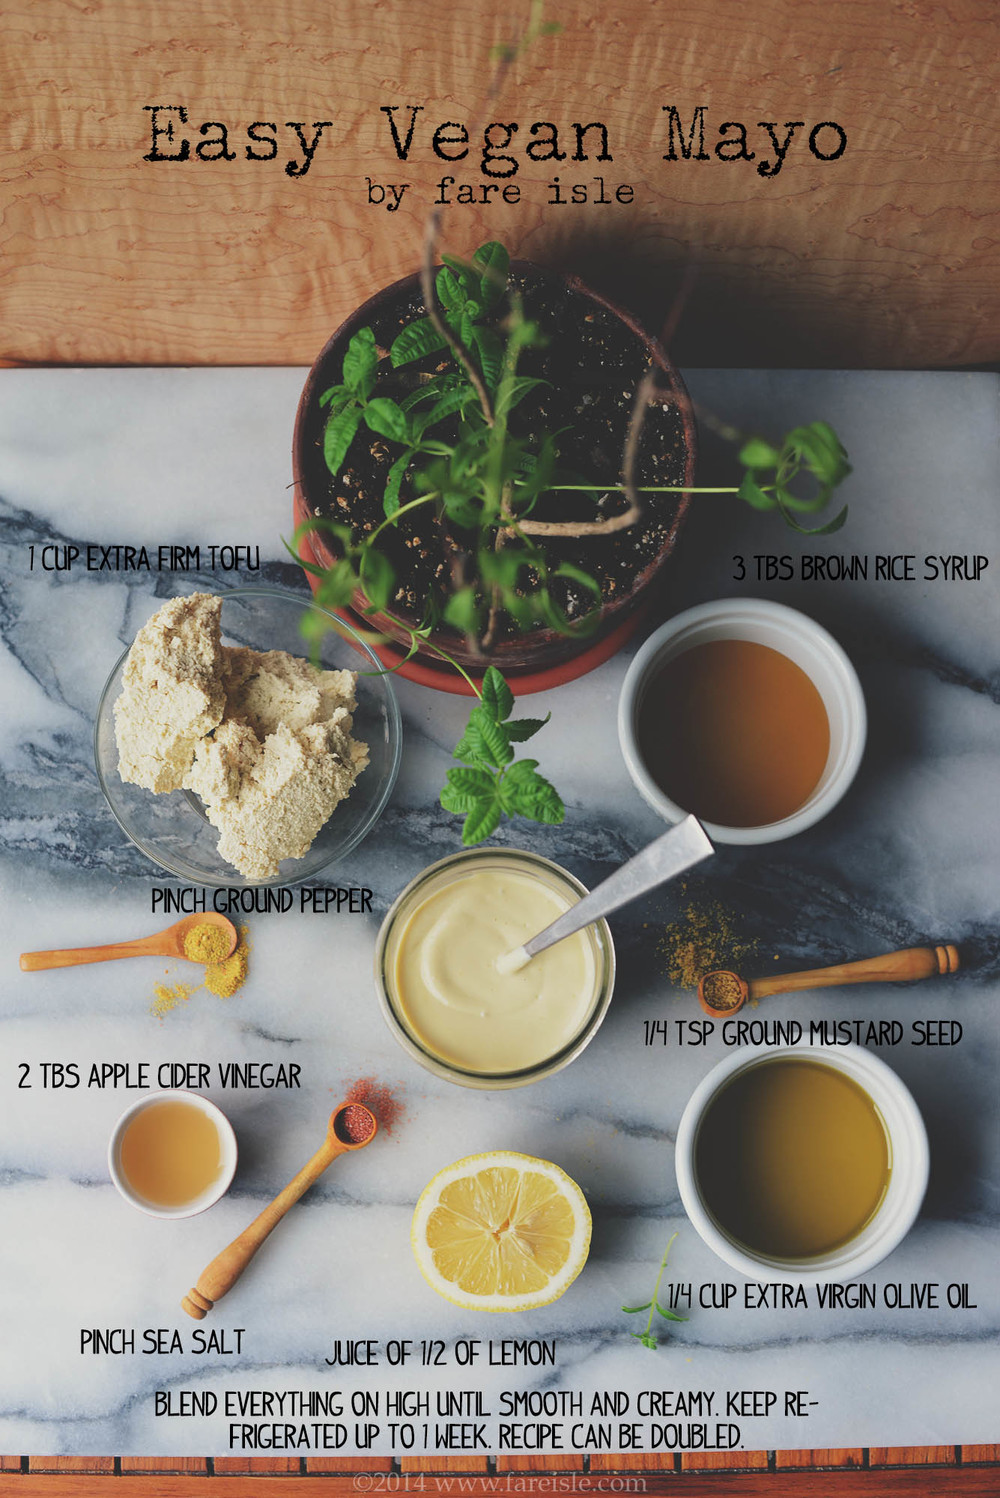 fare isle vegan mayo recipe 1.jpg